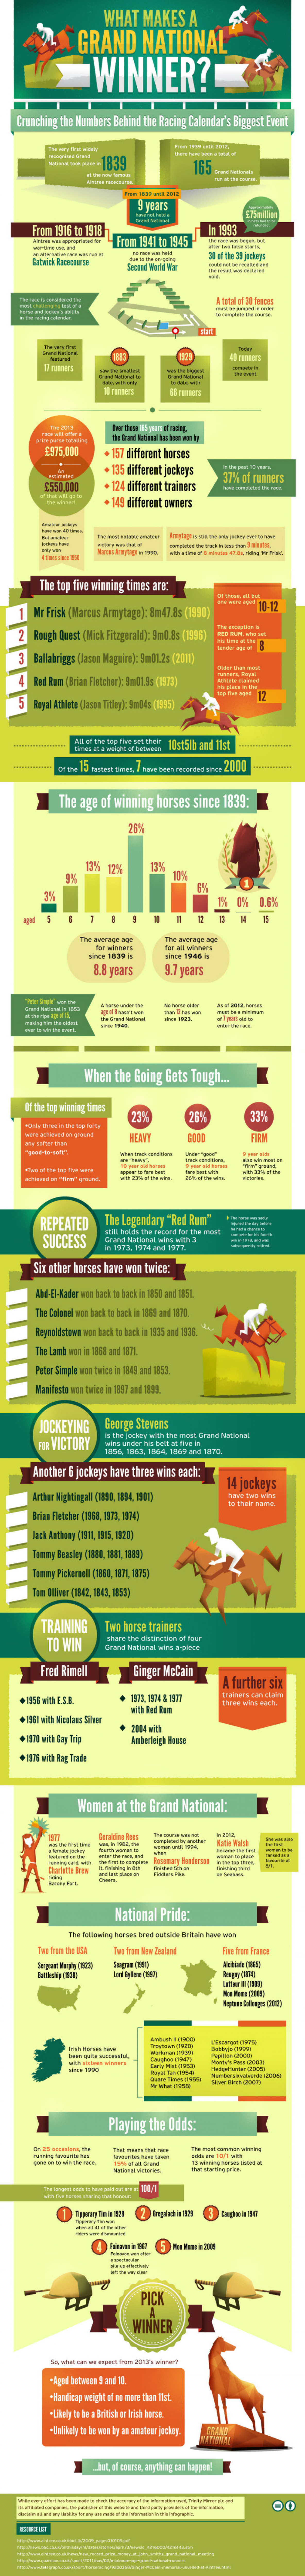 What Makes a Grand National Winner? Infographic